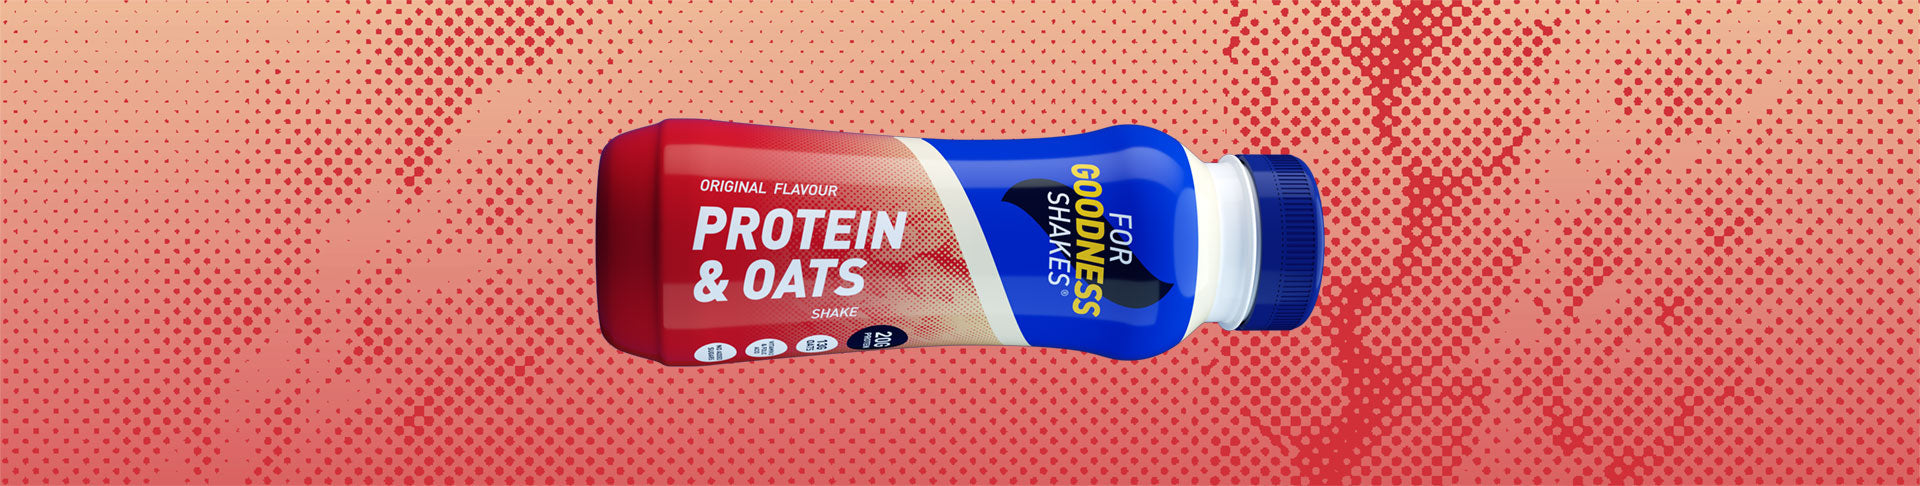 Protein & Oats Shake (315ml) - 10 pack